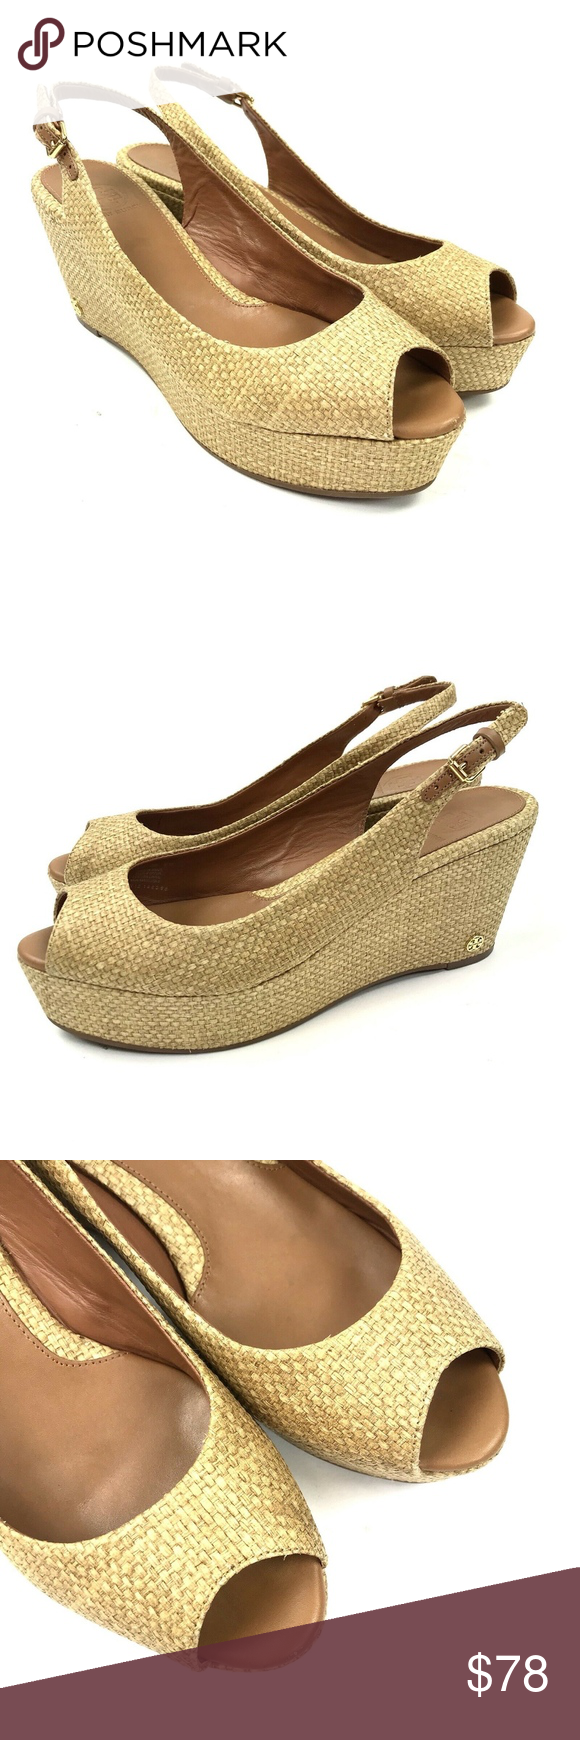 897a26cb986c Tory Burch Rosalind Wedge Platform Sandal Sz 8.5 Tory Burch Rosalind Tan  Natural Woven Slingback Wedge